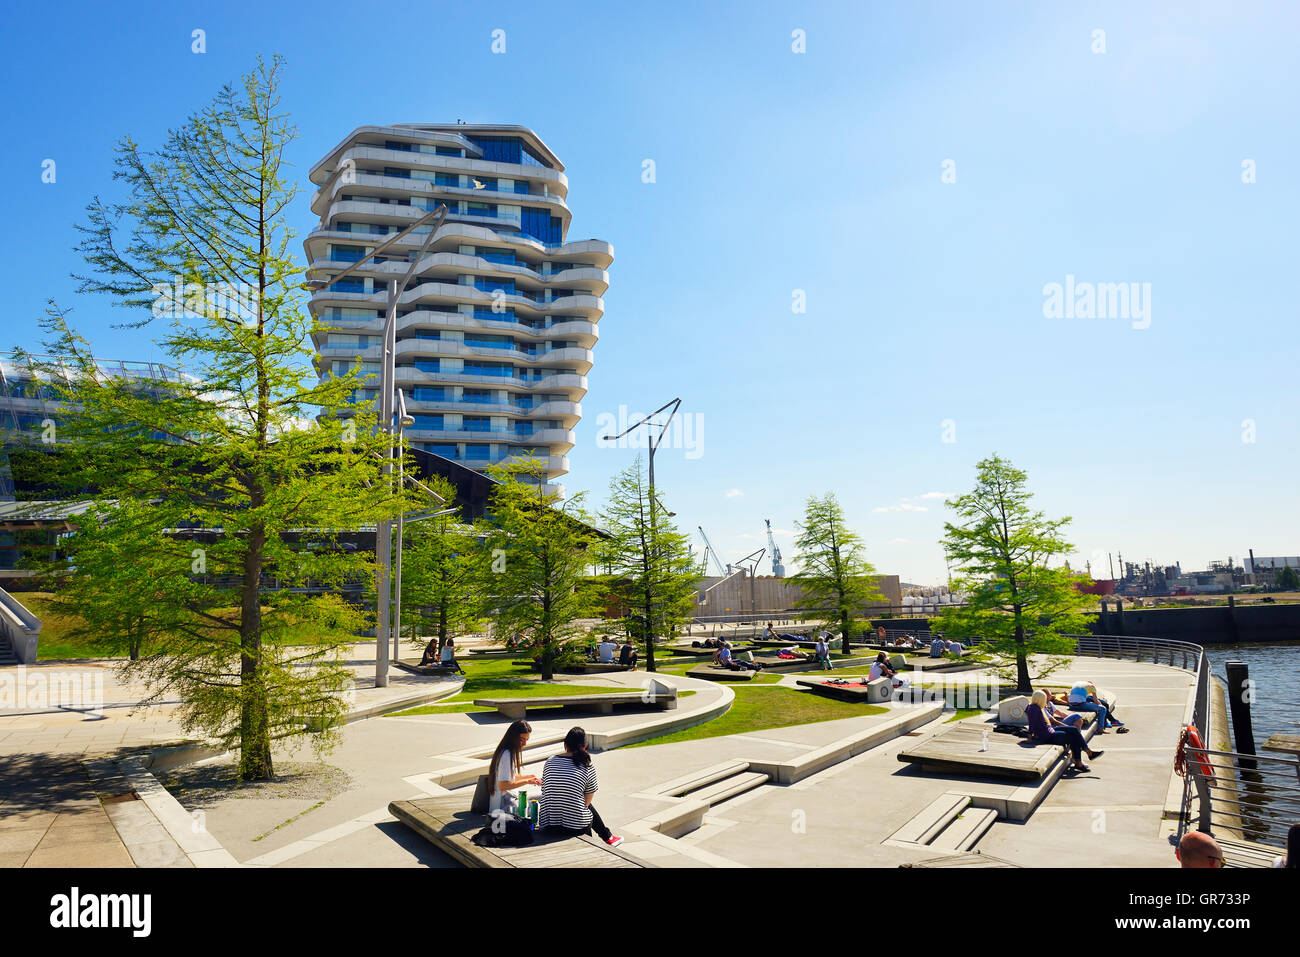 Marco Polo Terraces And Marco Polo Tower In Hamburg, Germany - Stock Image